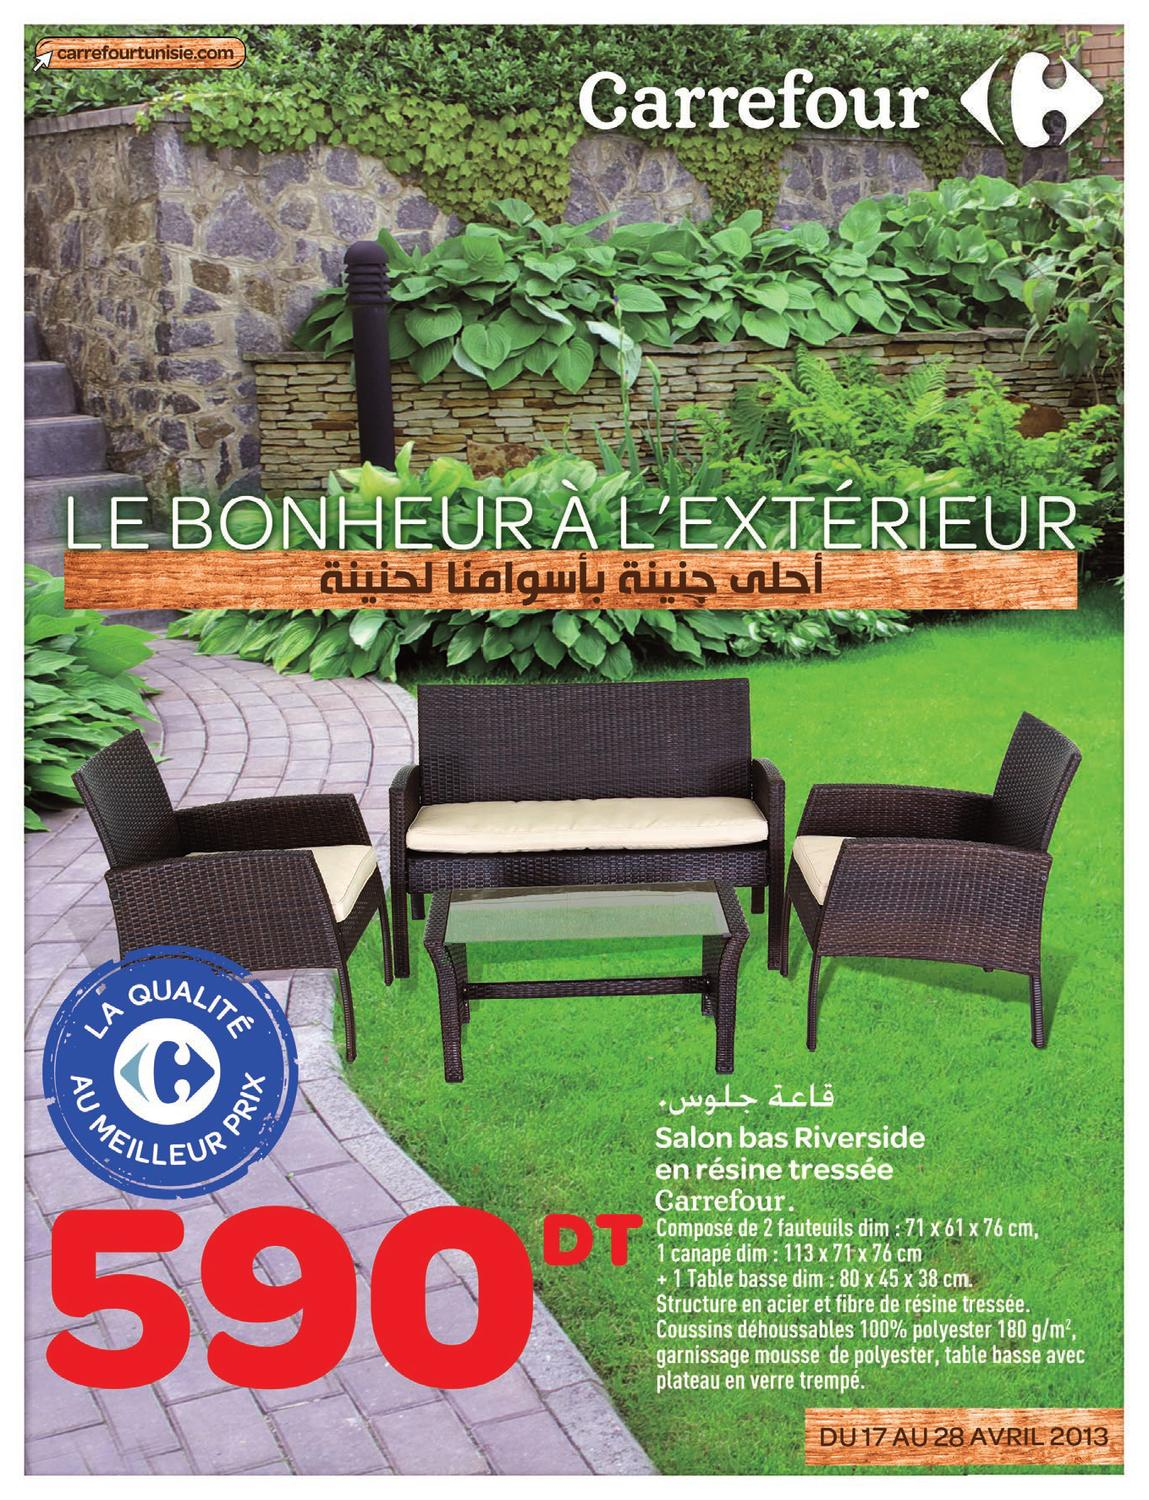 Catalogue Carrefour Salon De Jardin Top Catalogue Carrefour Le Bonheur Luextrieur By Carrefour